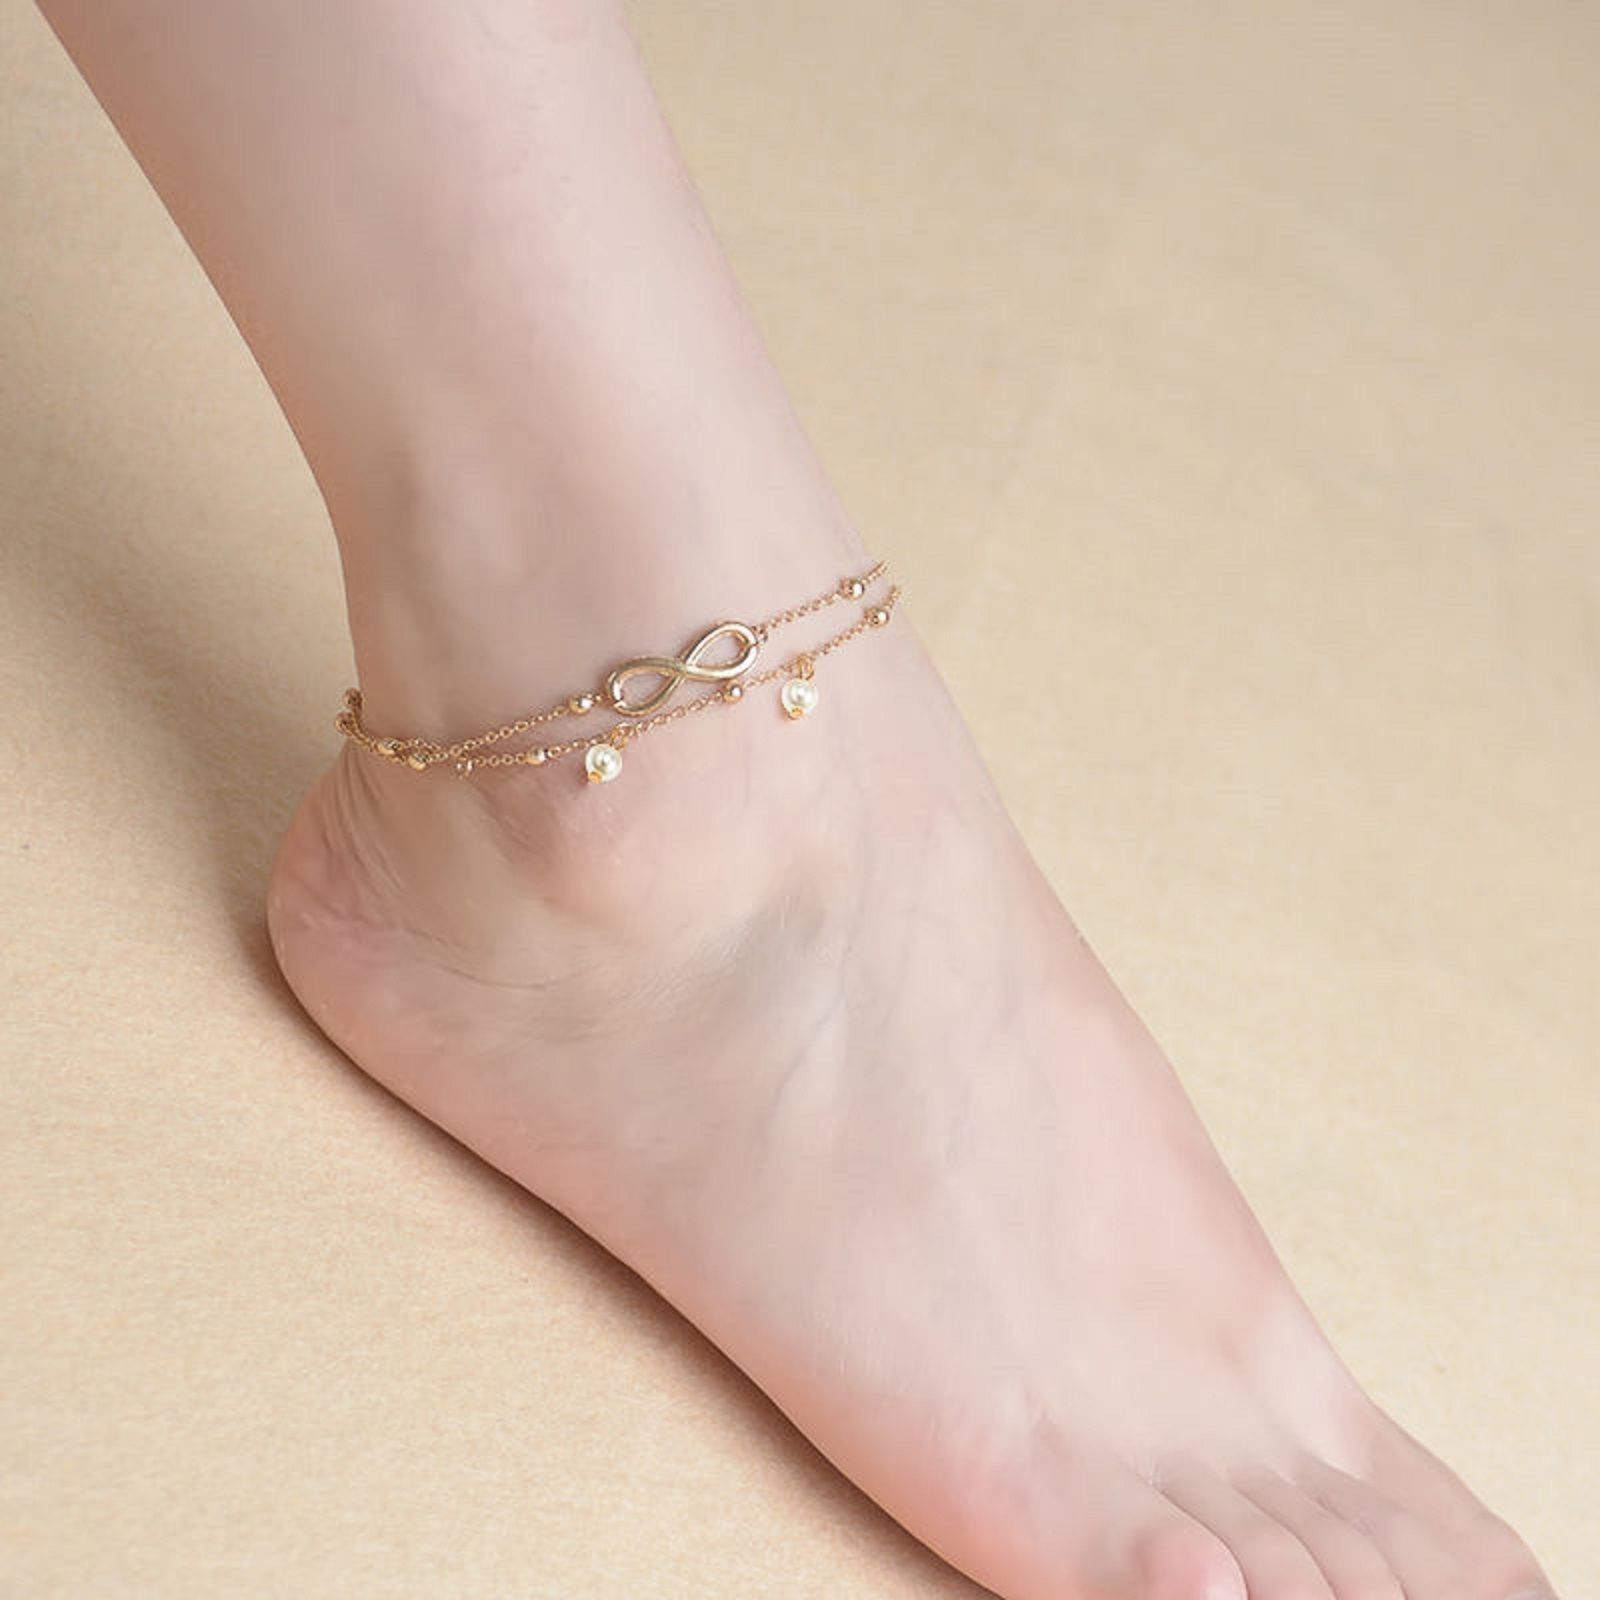 bracelets bodycandy collections crystals where ankle anklet i created gold swarovski buy can with bracelet shimmer plated handmade